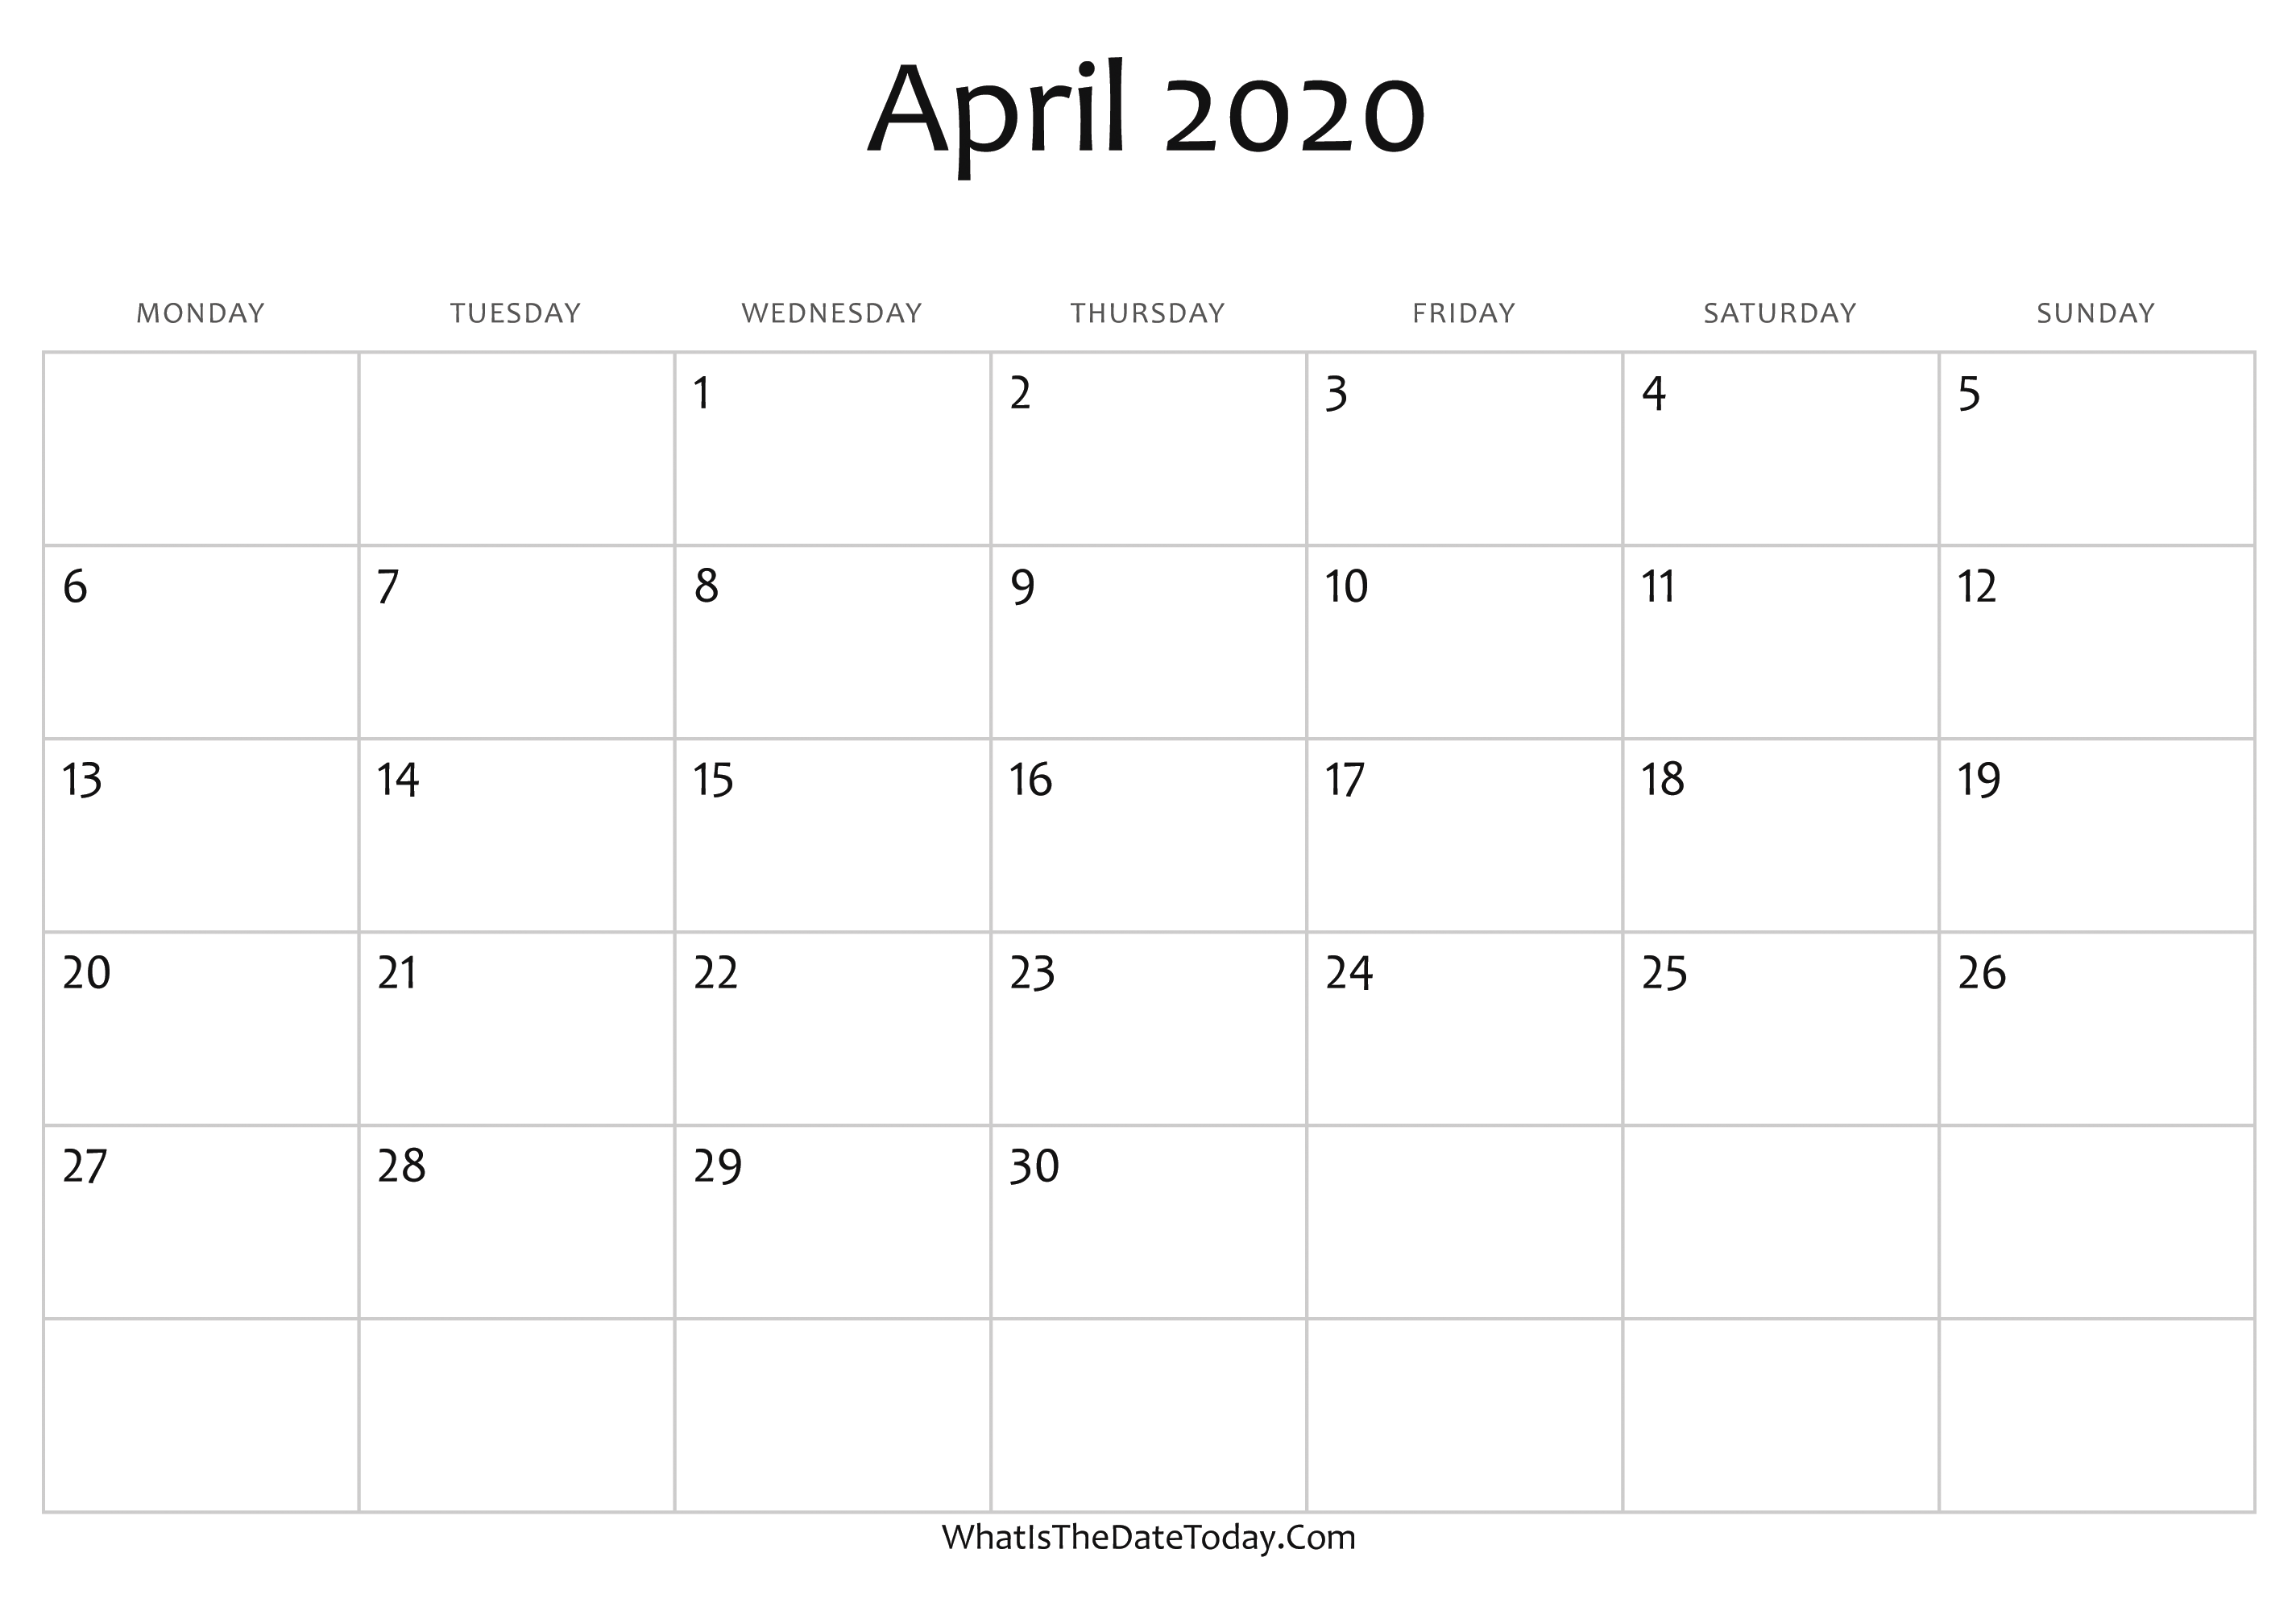 Calendar Editable 2020 Blank April Calendar 2020 Editable | Whatisthedatetoday.Com